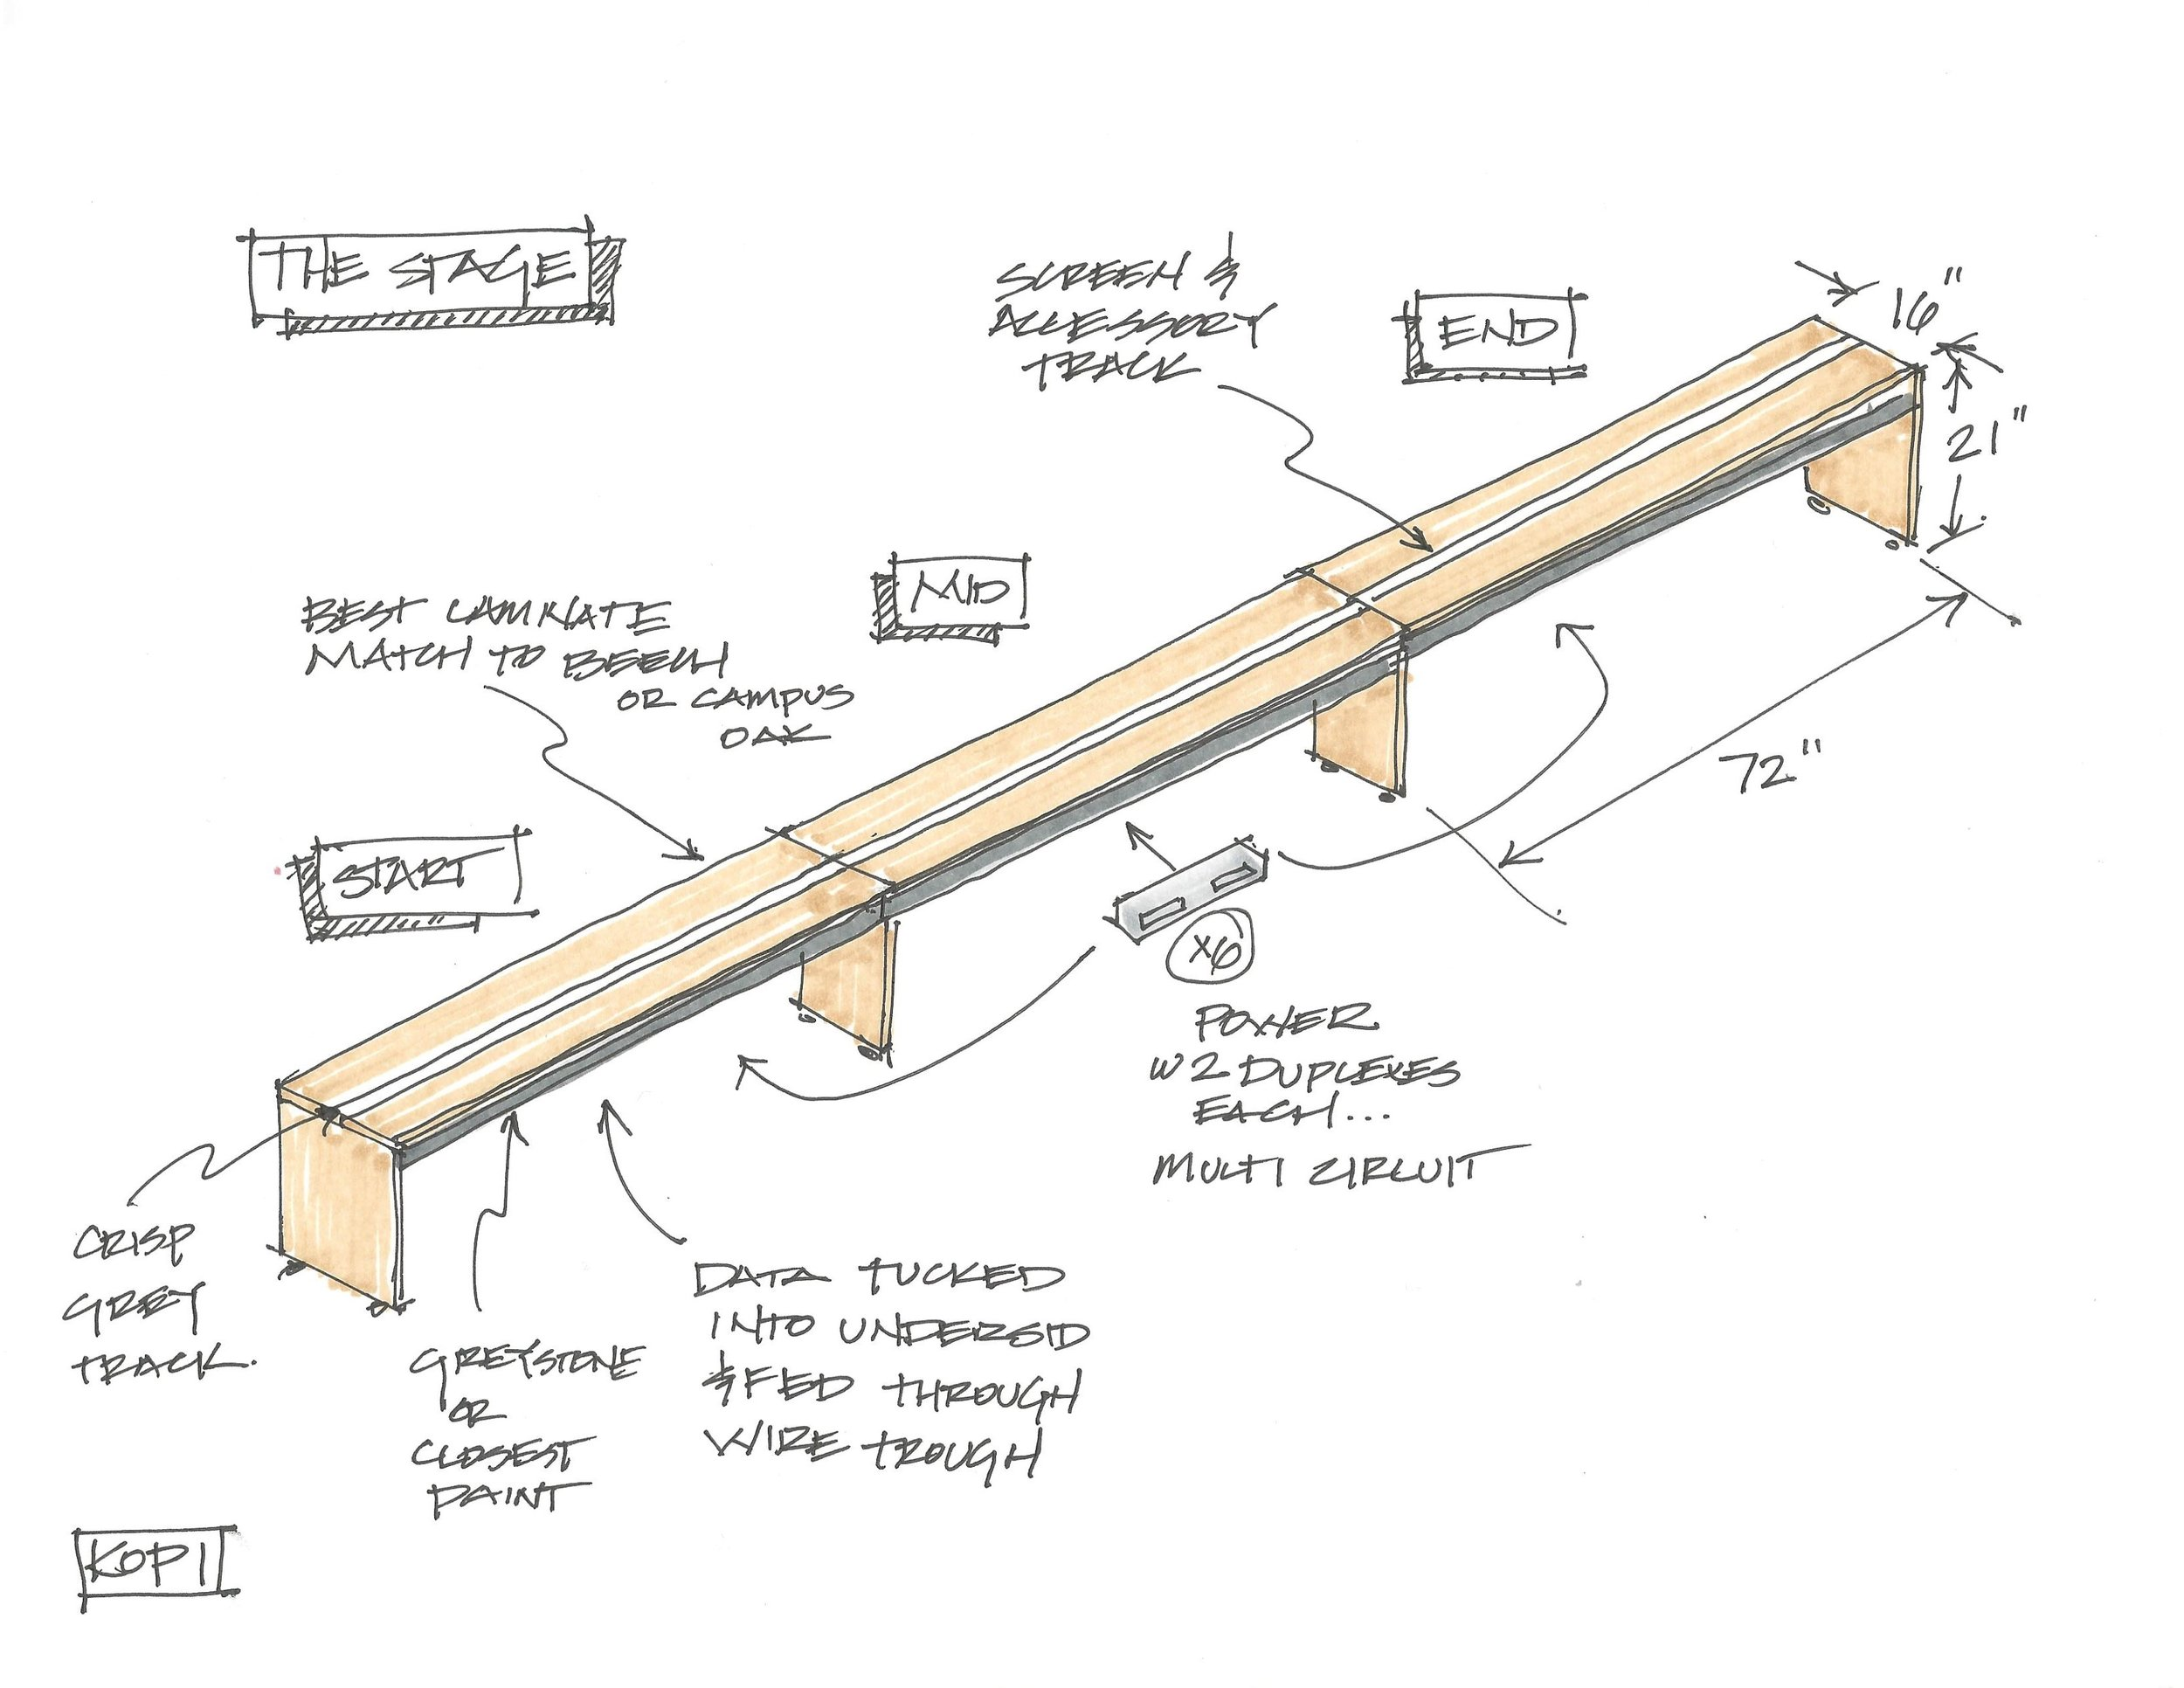 A sketch for a potential client showing the base platform, or stage, that supports the system.